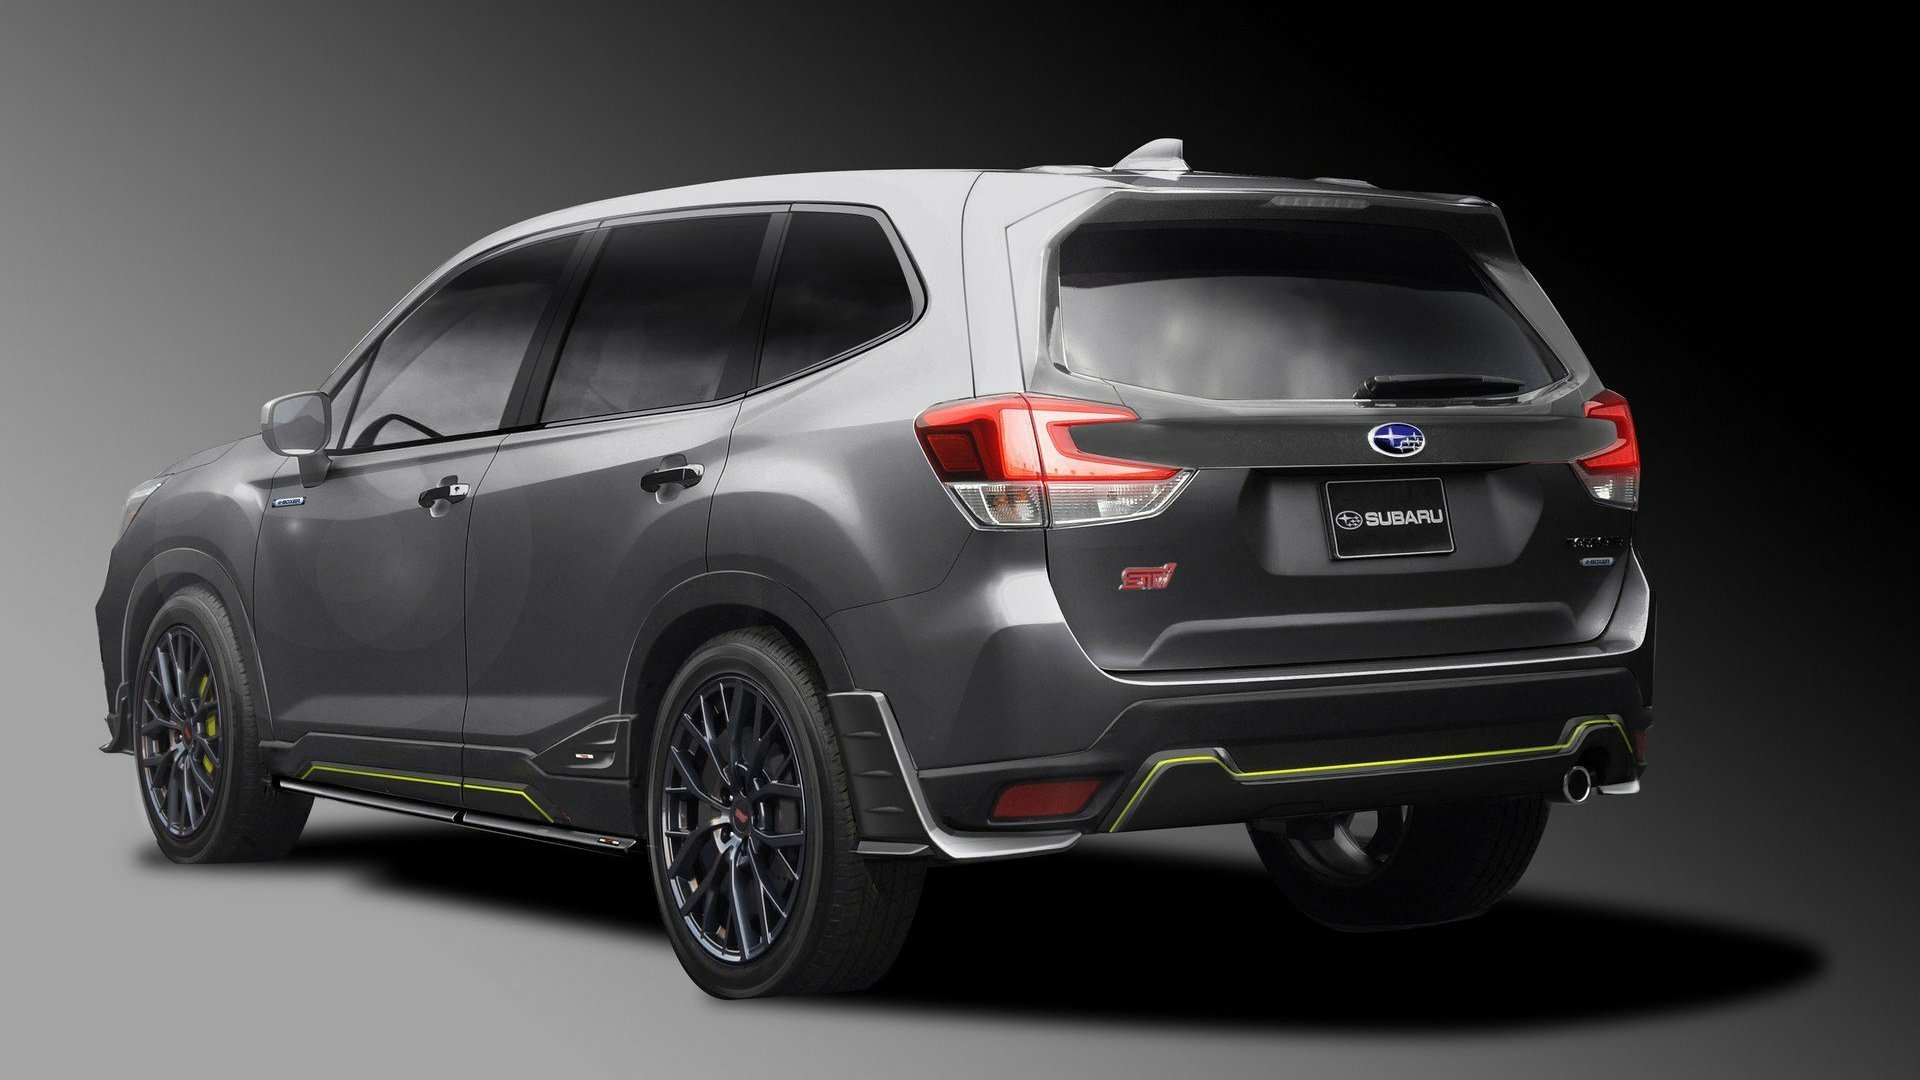 78 All New 2020 Subaru Forester Hybrid Specs